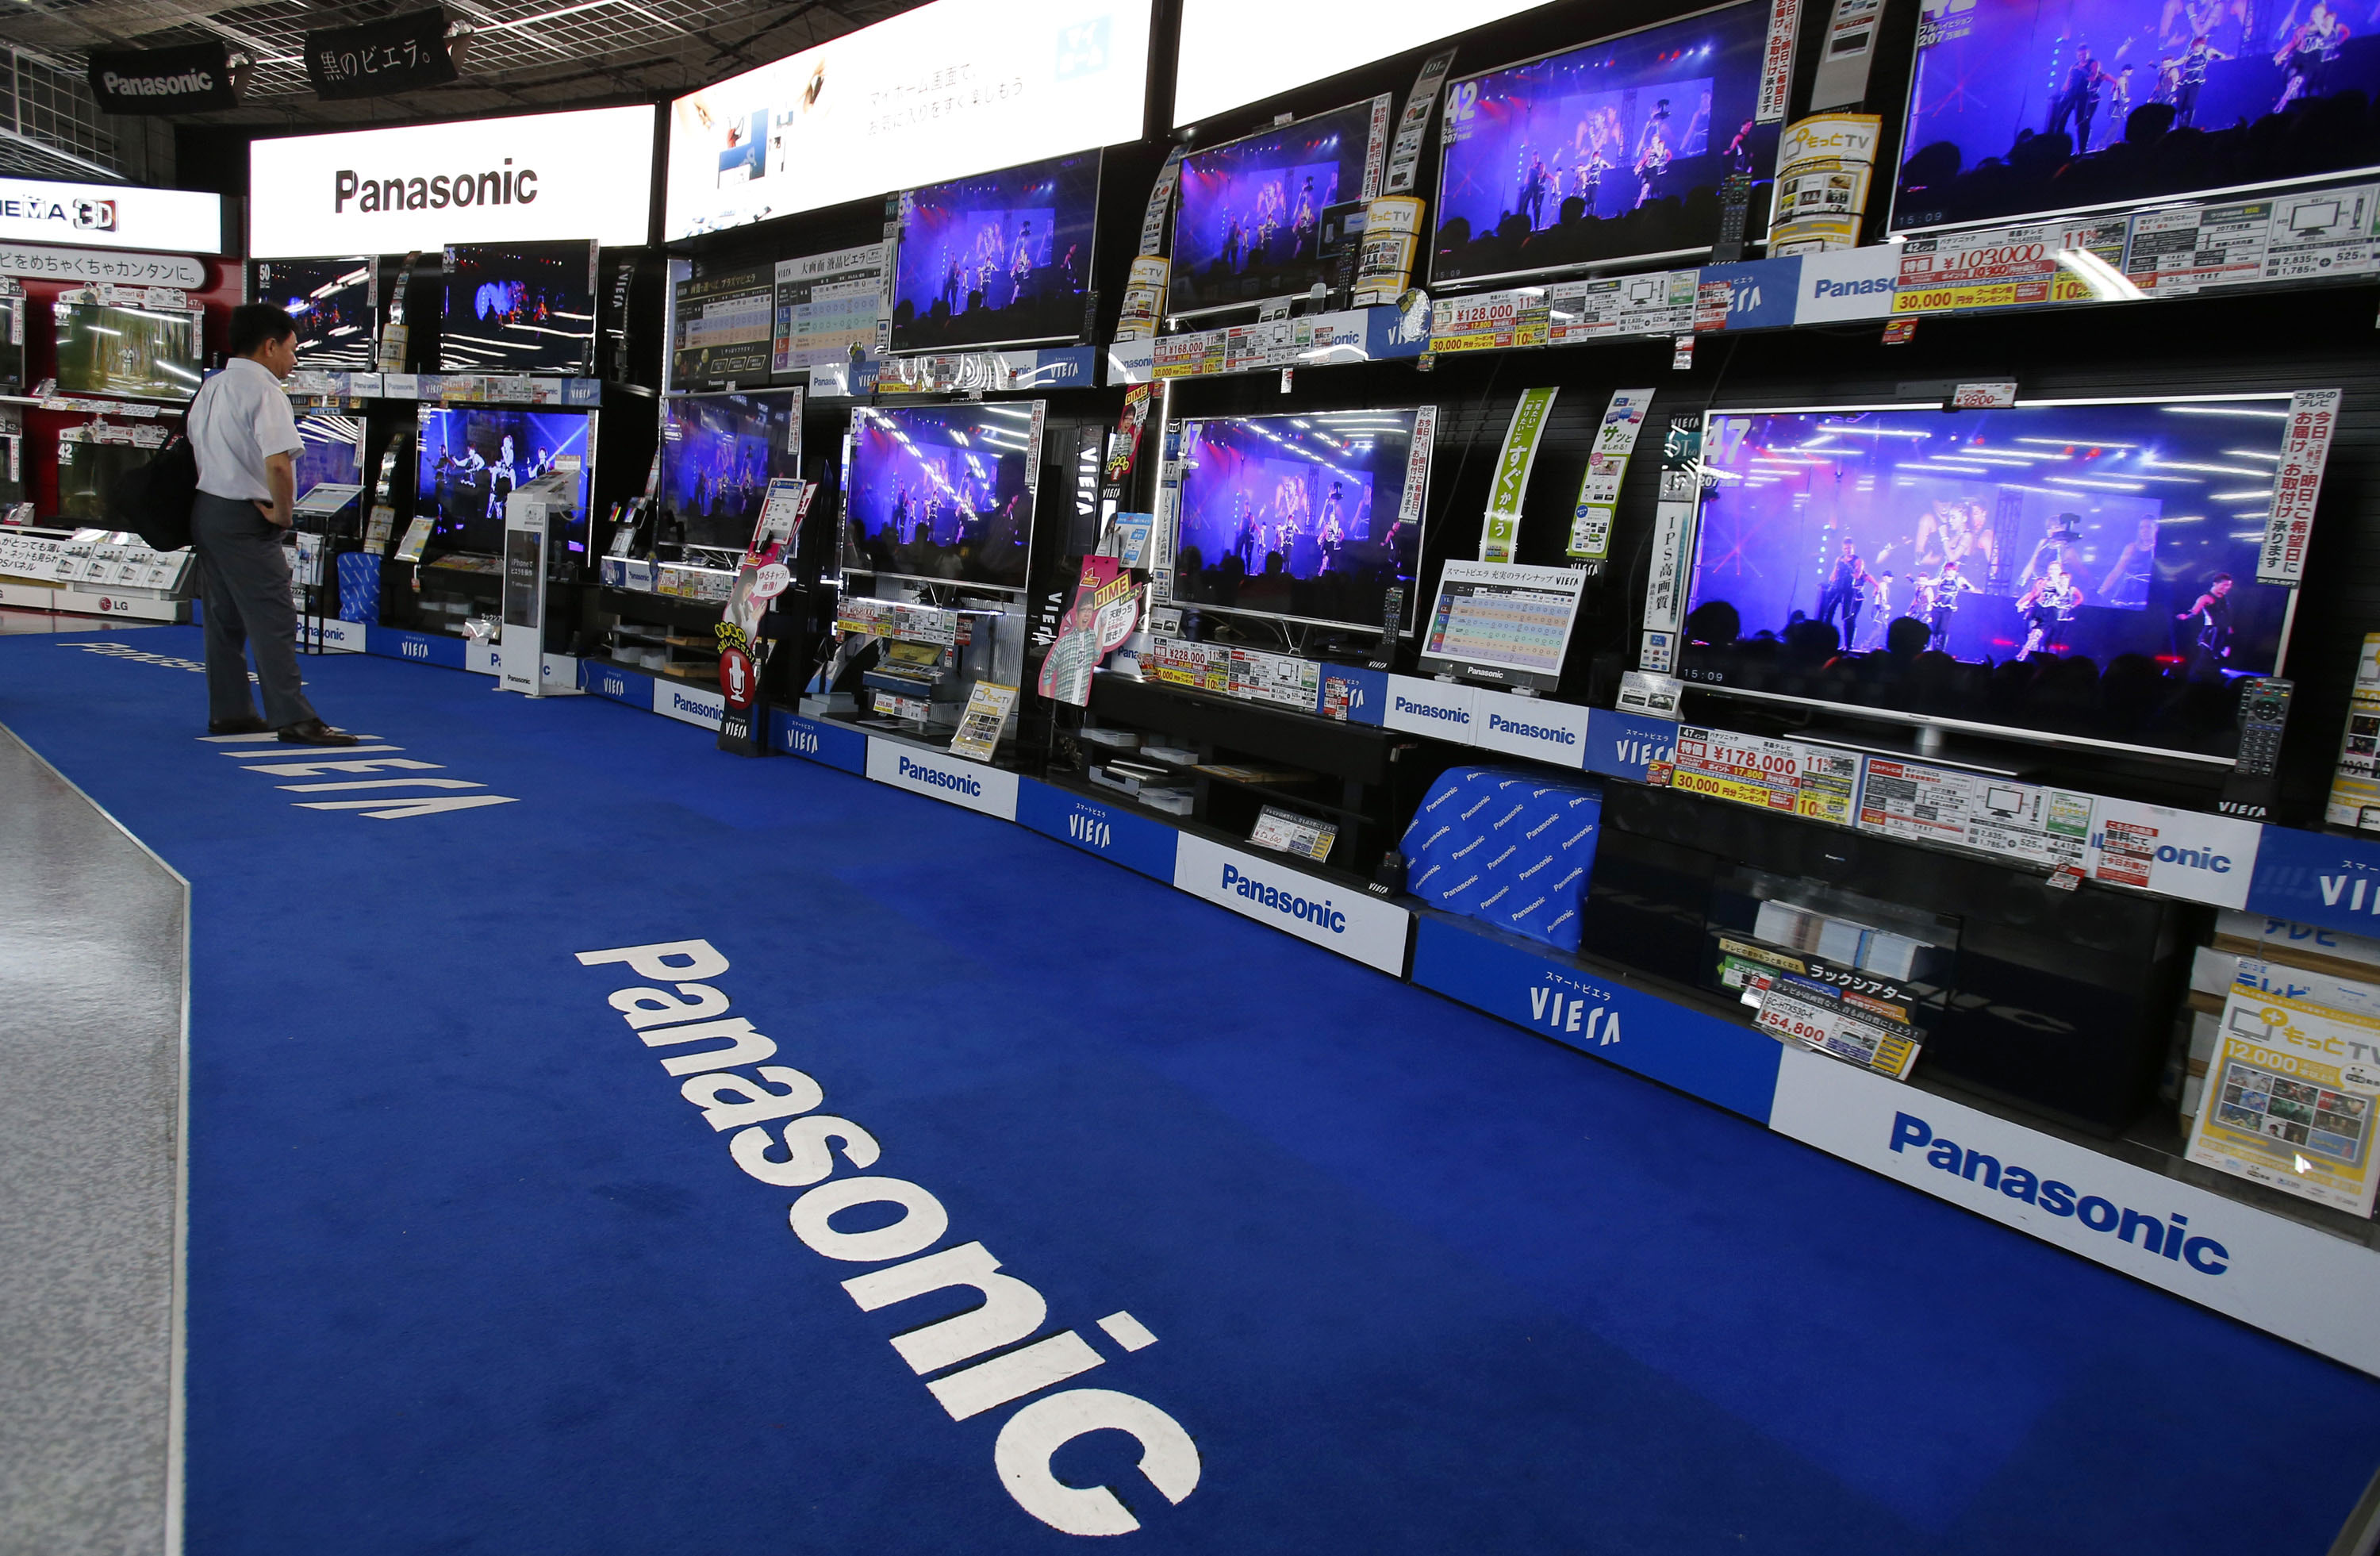 Panasonic's corporate information includes company overview, management, technology, design, history, brand, and careers.